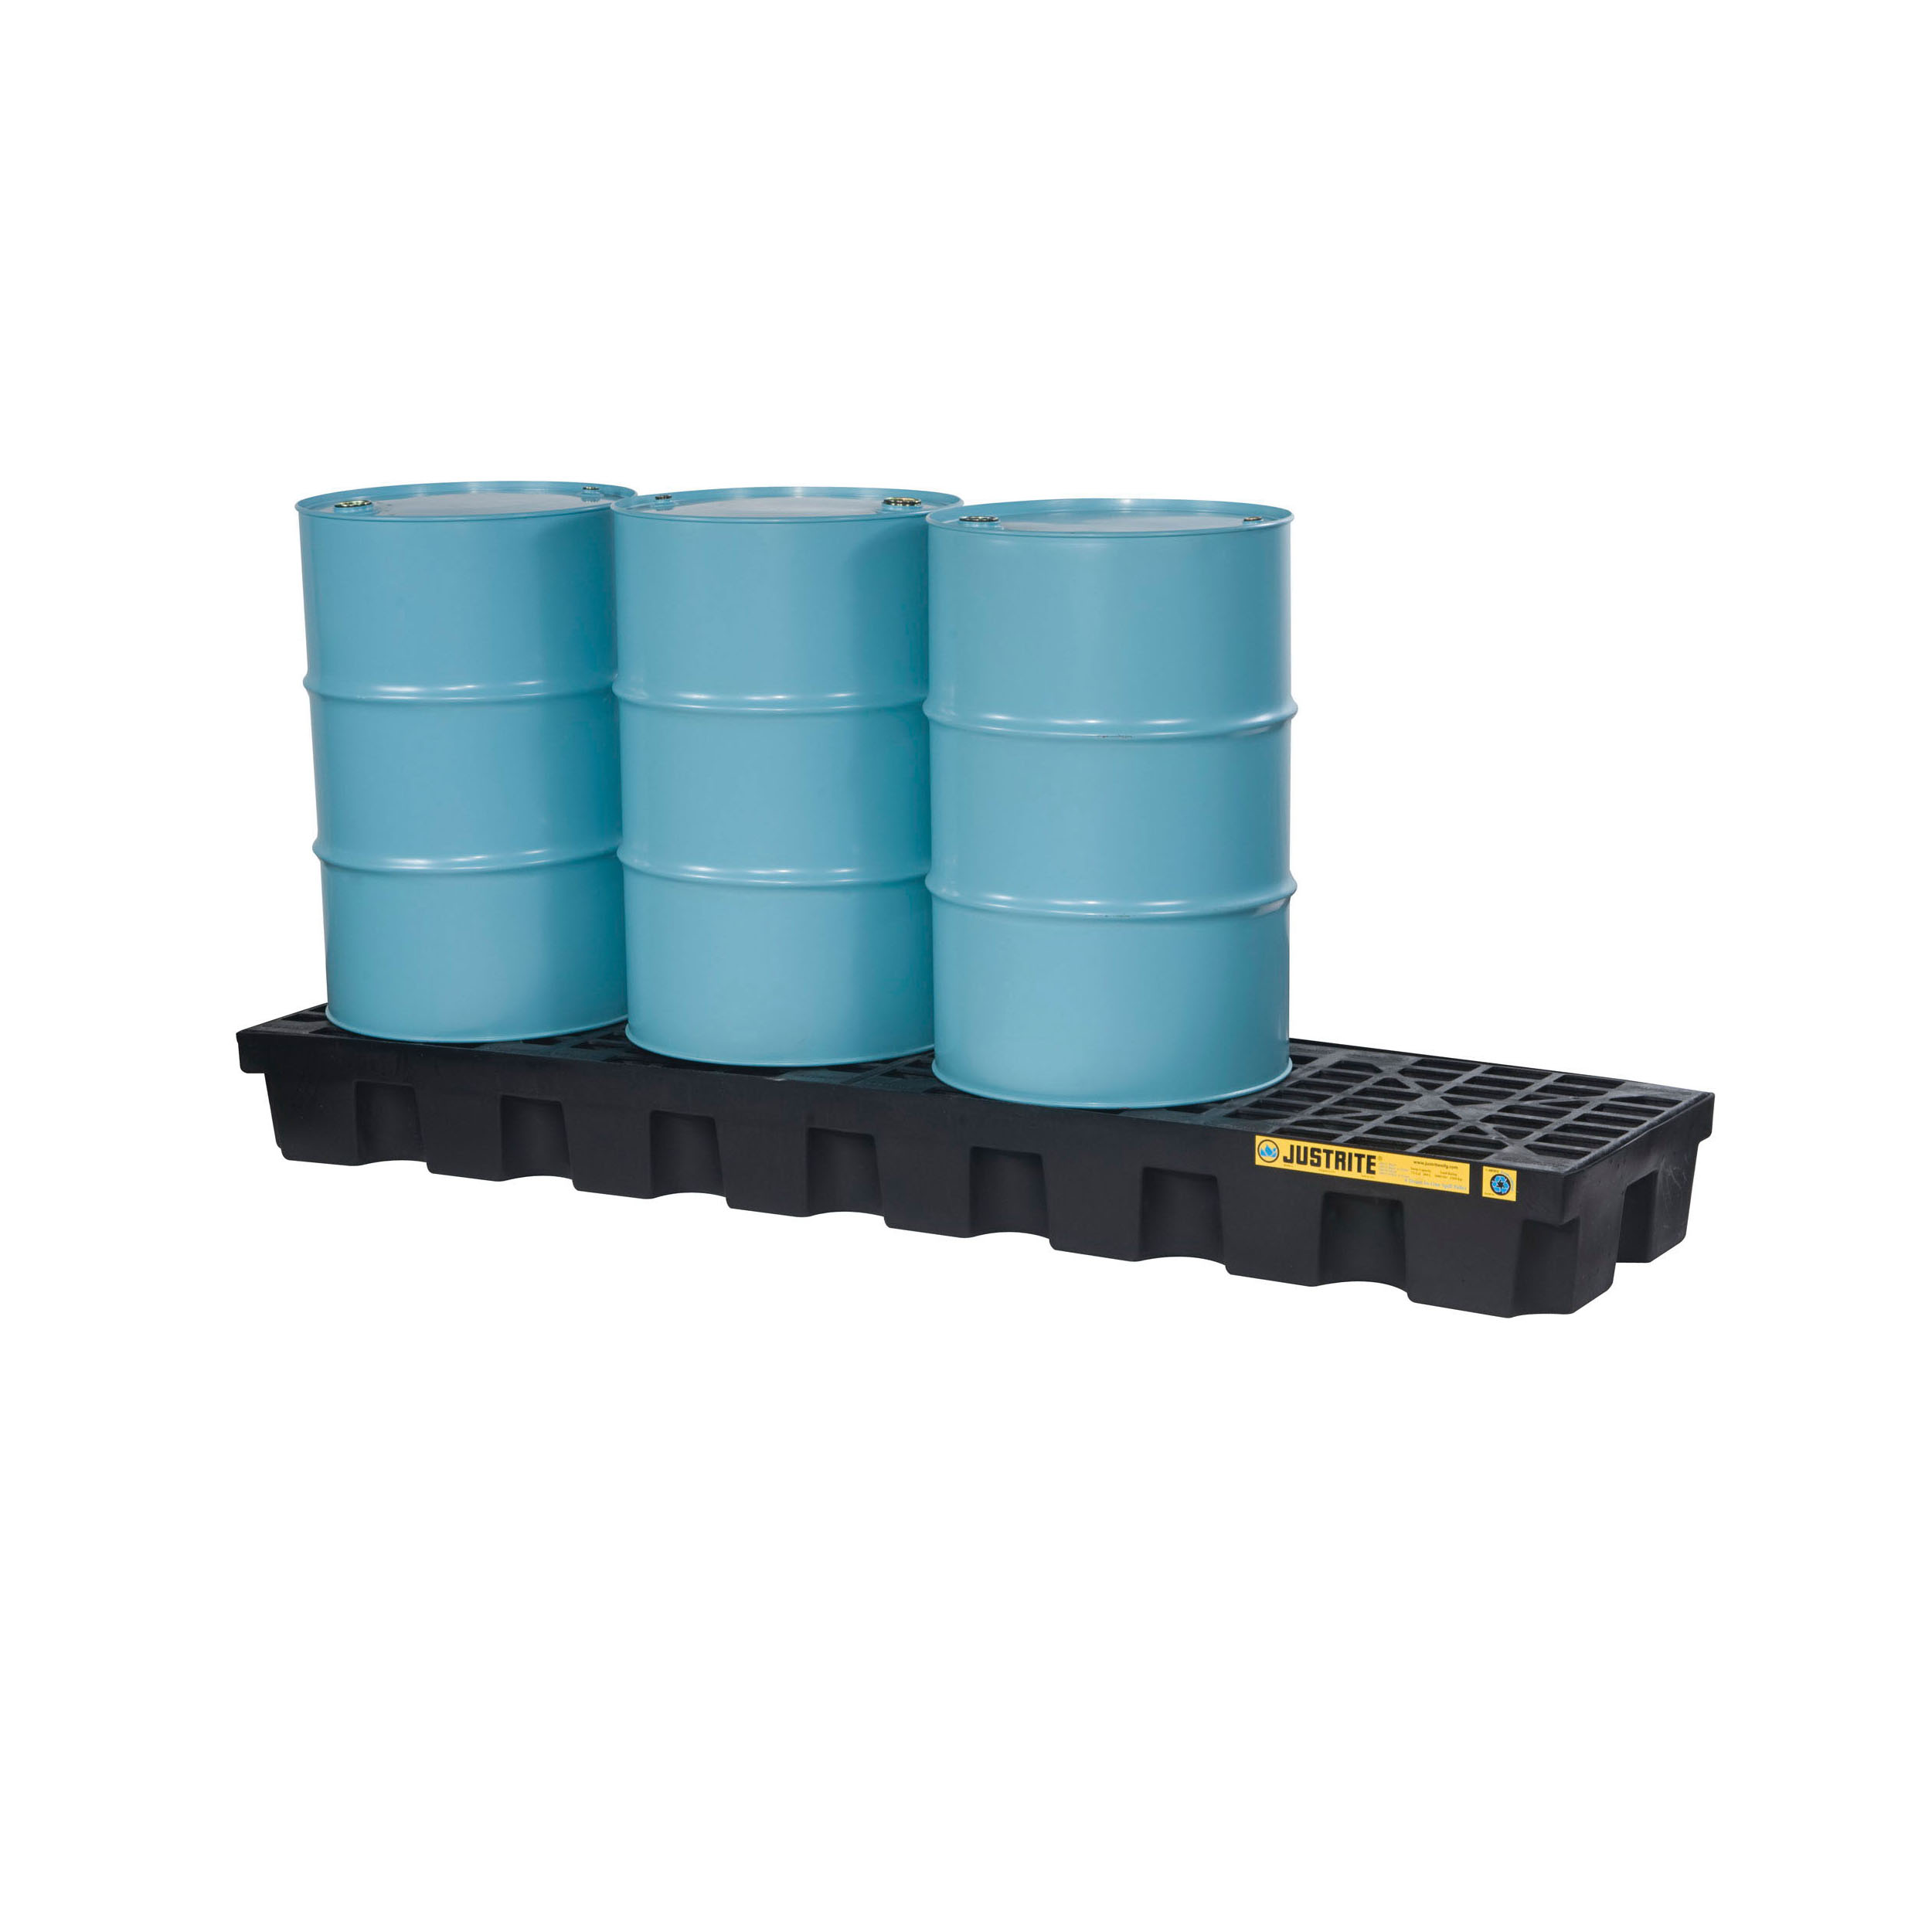 Justrite® 28631 EcoPolyBlend™ Spill Control Pallet, 4 Drums, 75 gal Spill, 5000 lb Load, 100% Recycled Polyethylene